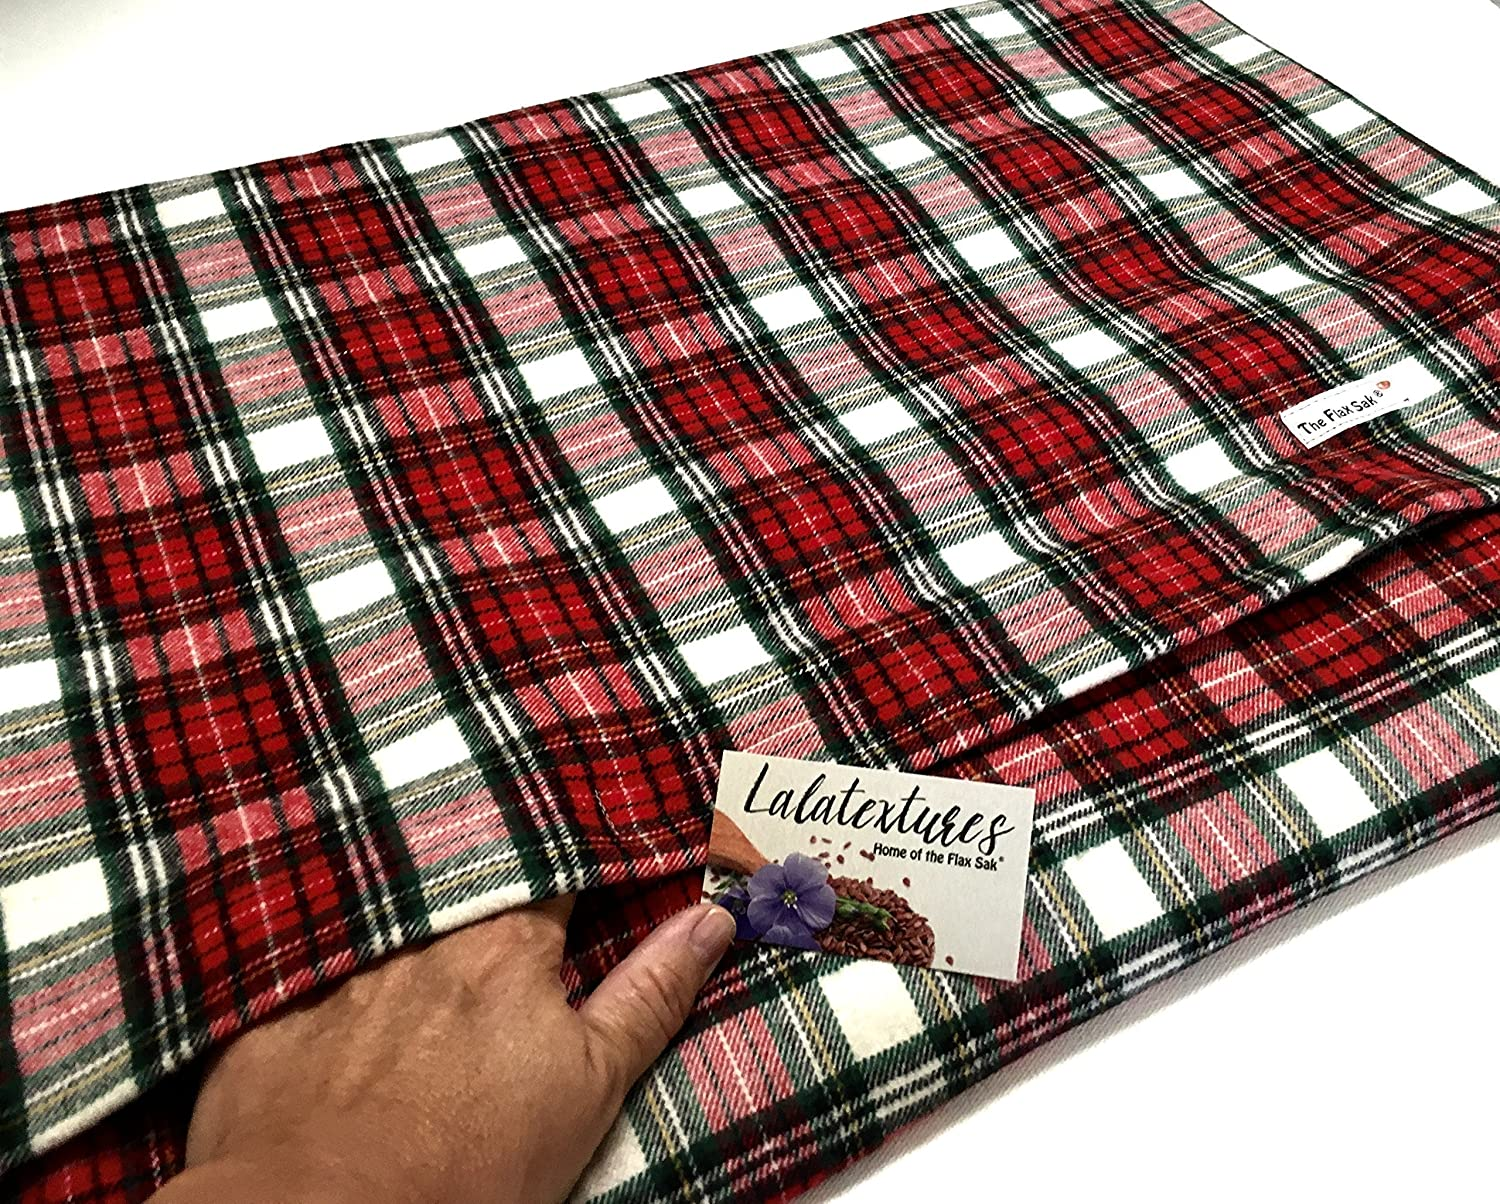 XXXLarge microwavable heating pad, Sensory weighted blanket 20X28 in, weighs approx 8 lbs, The